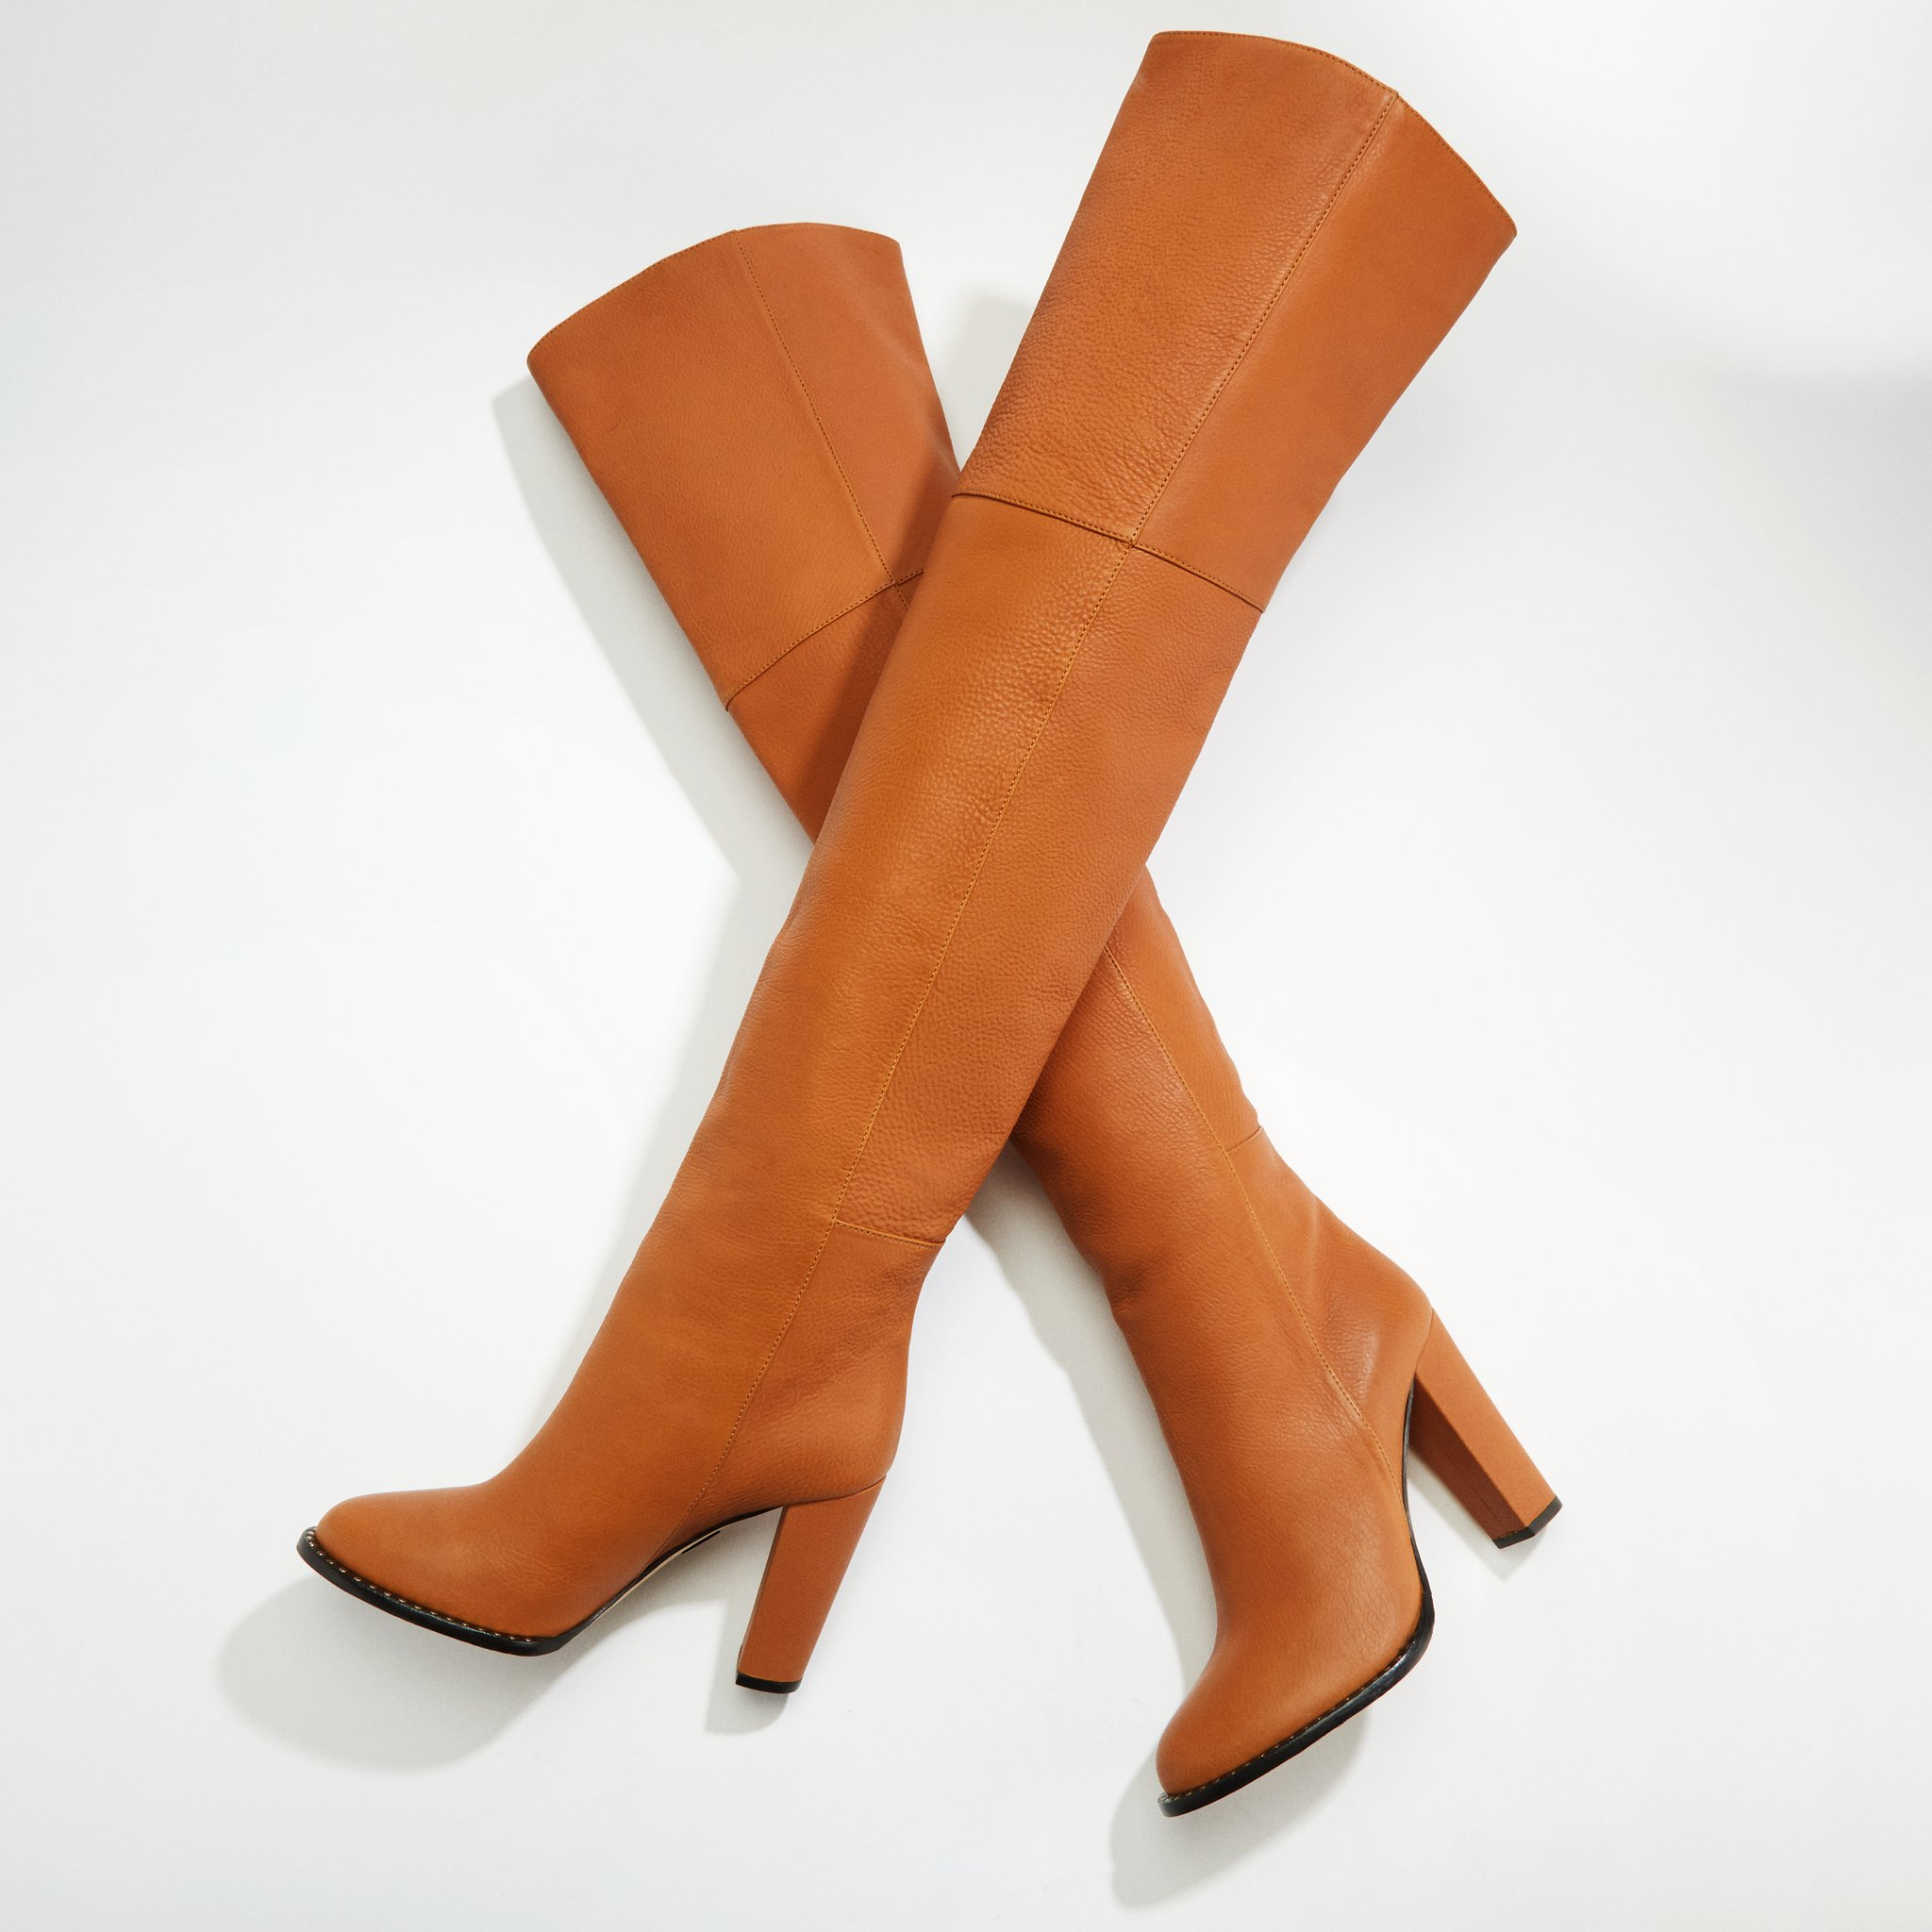 Tamara Mellon Prediction over the knee boots